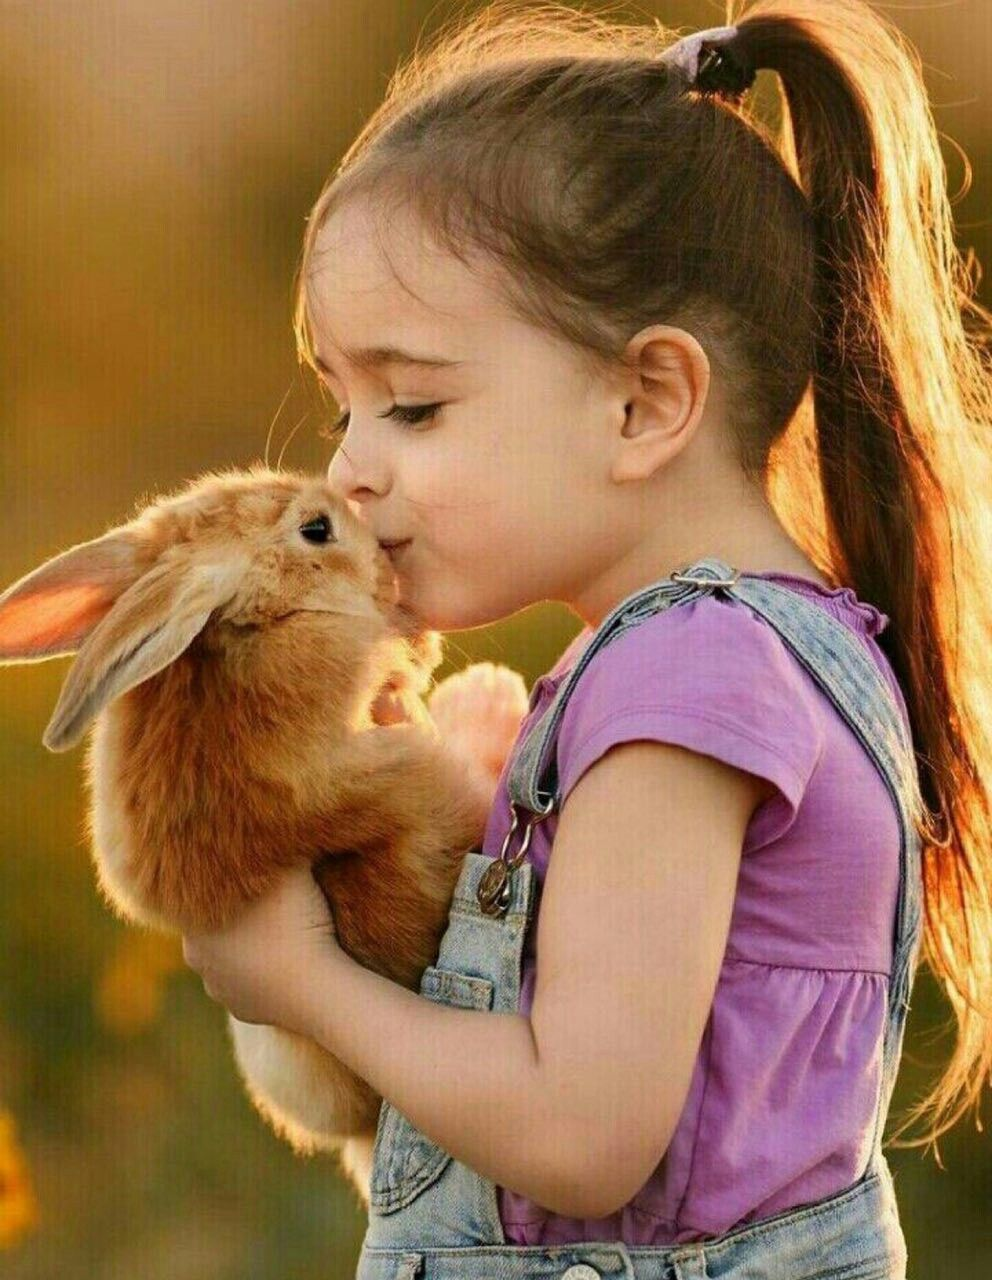 sweet little girl and bunny | cute and/or funny | pinterest | bunny